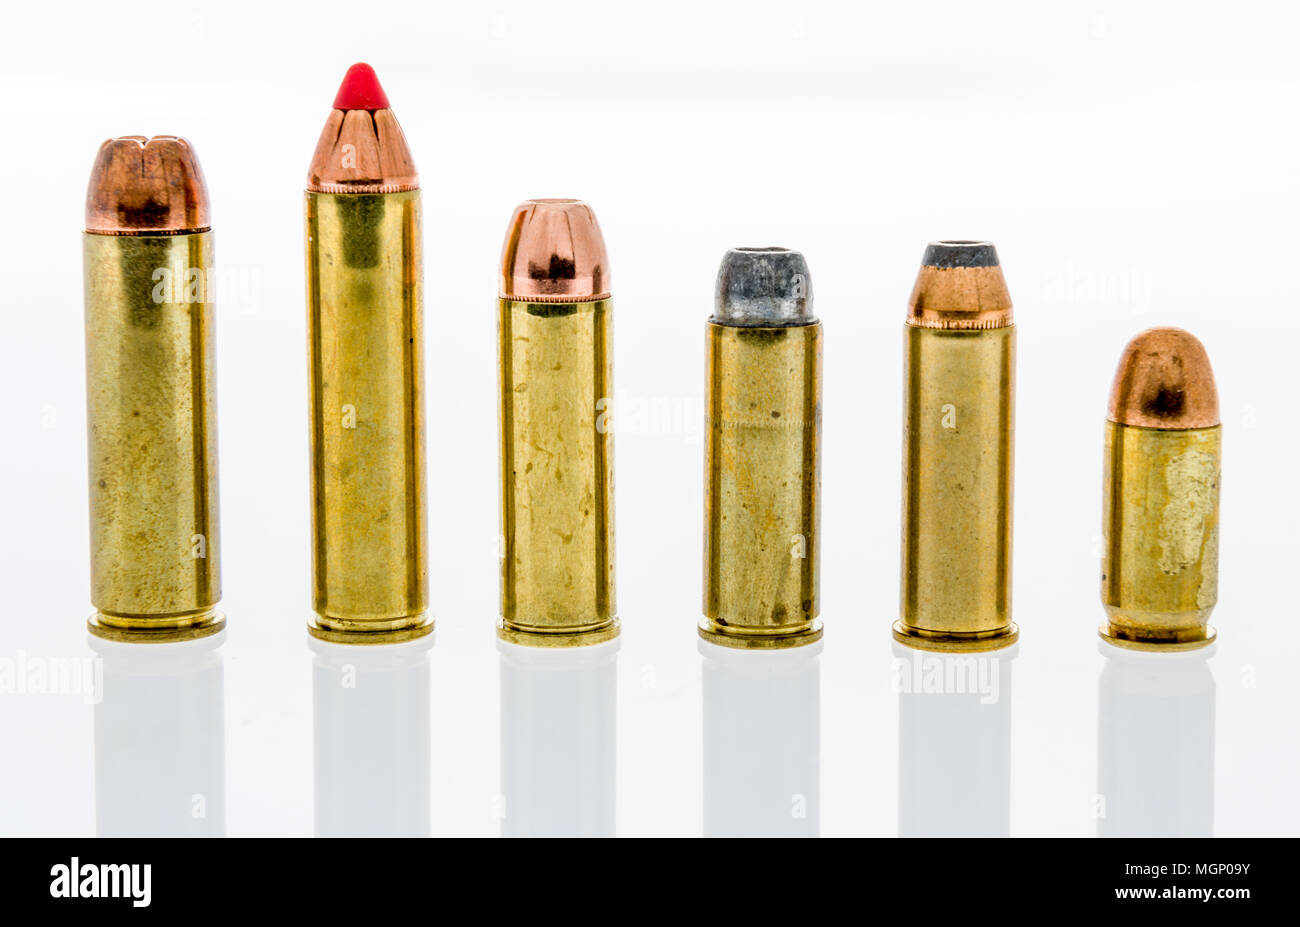 hight resolution of a row and collection of big bore handgun ammunition including 500 and 460 magnum 454